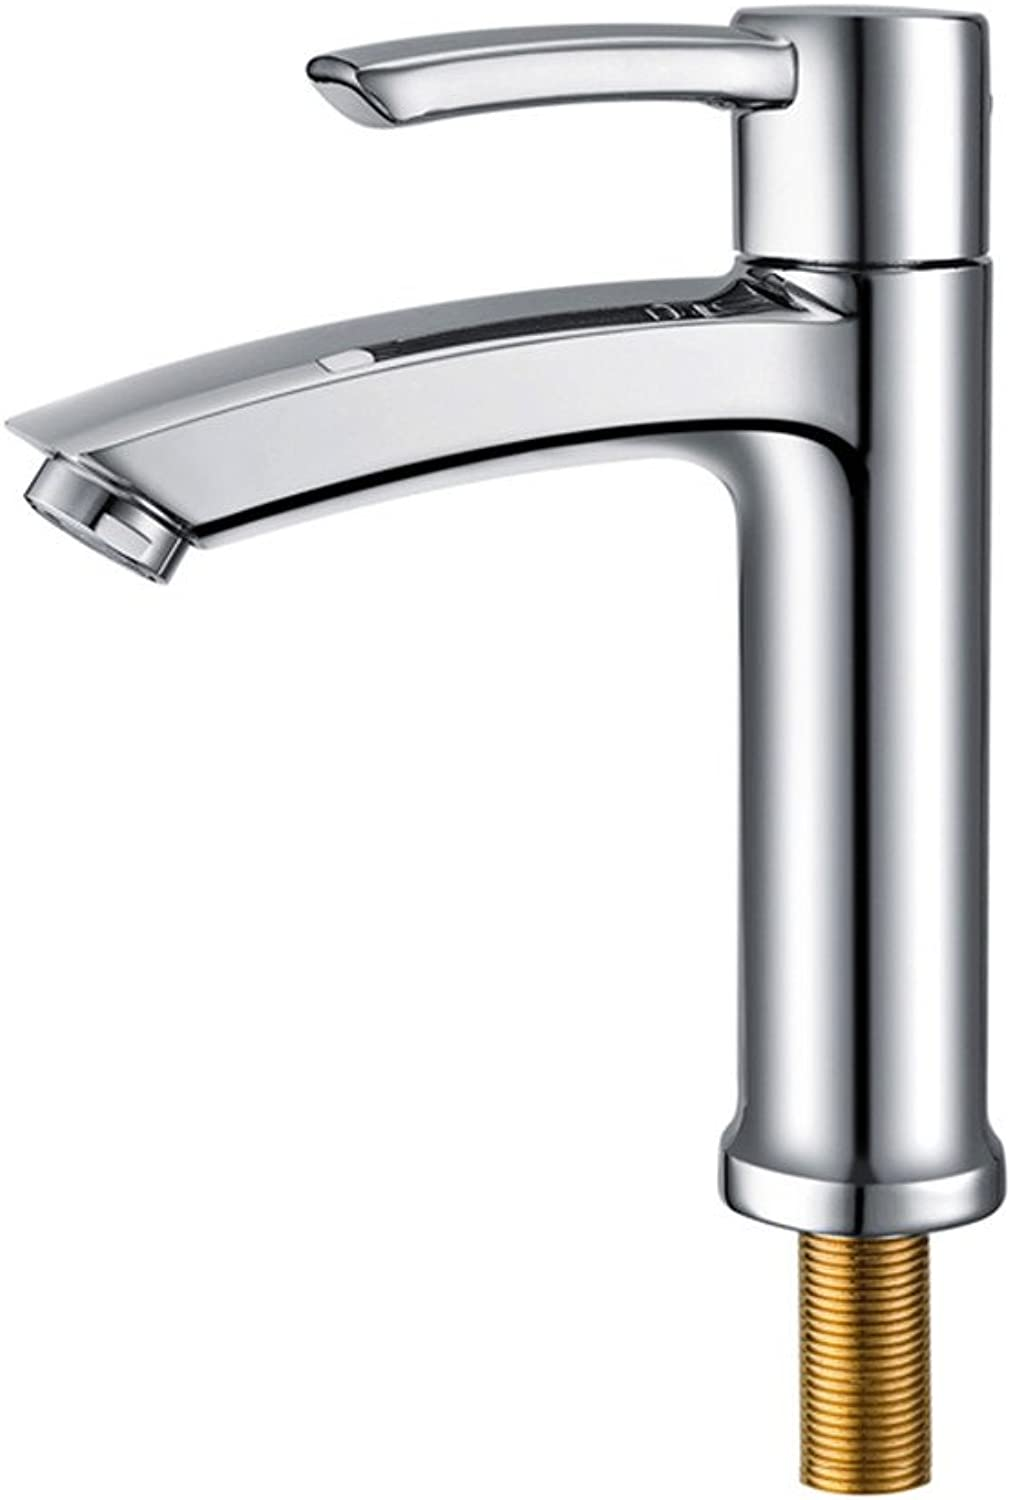 Hlluya Professional Sink Mixer Tap Kitchen Faucet Single cold basin faucet vanity sink lowered basin mixer full copper single cold water taps 953